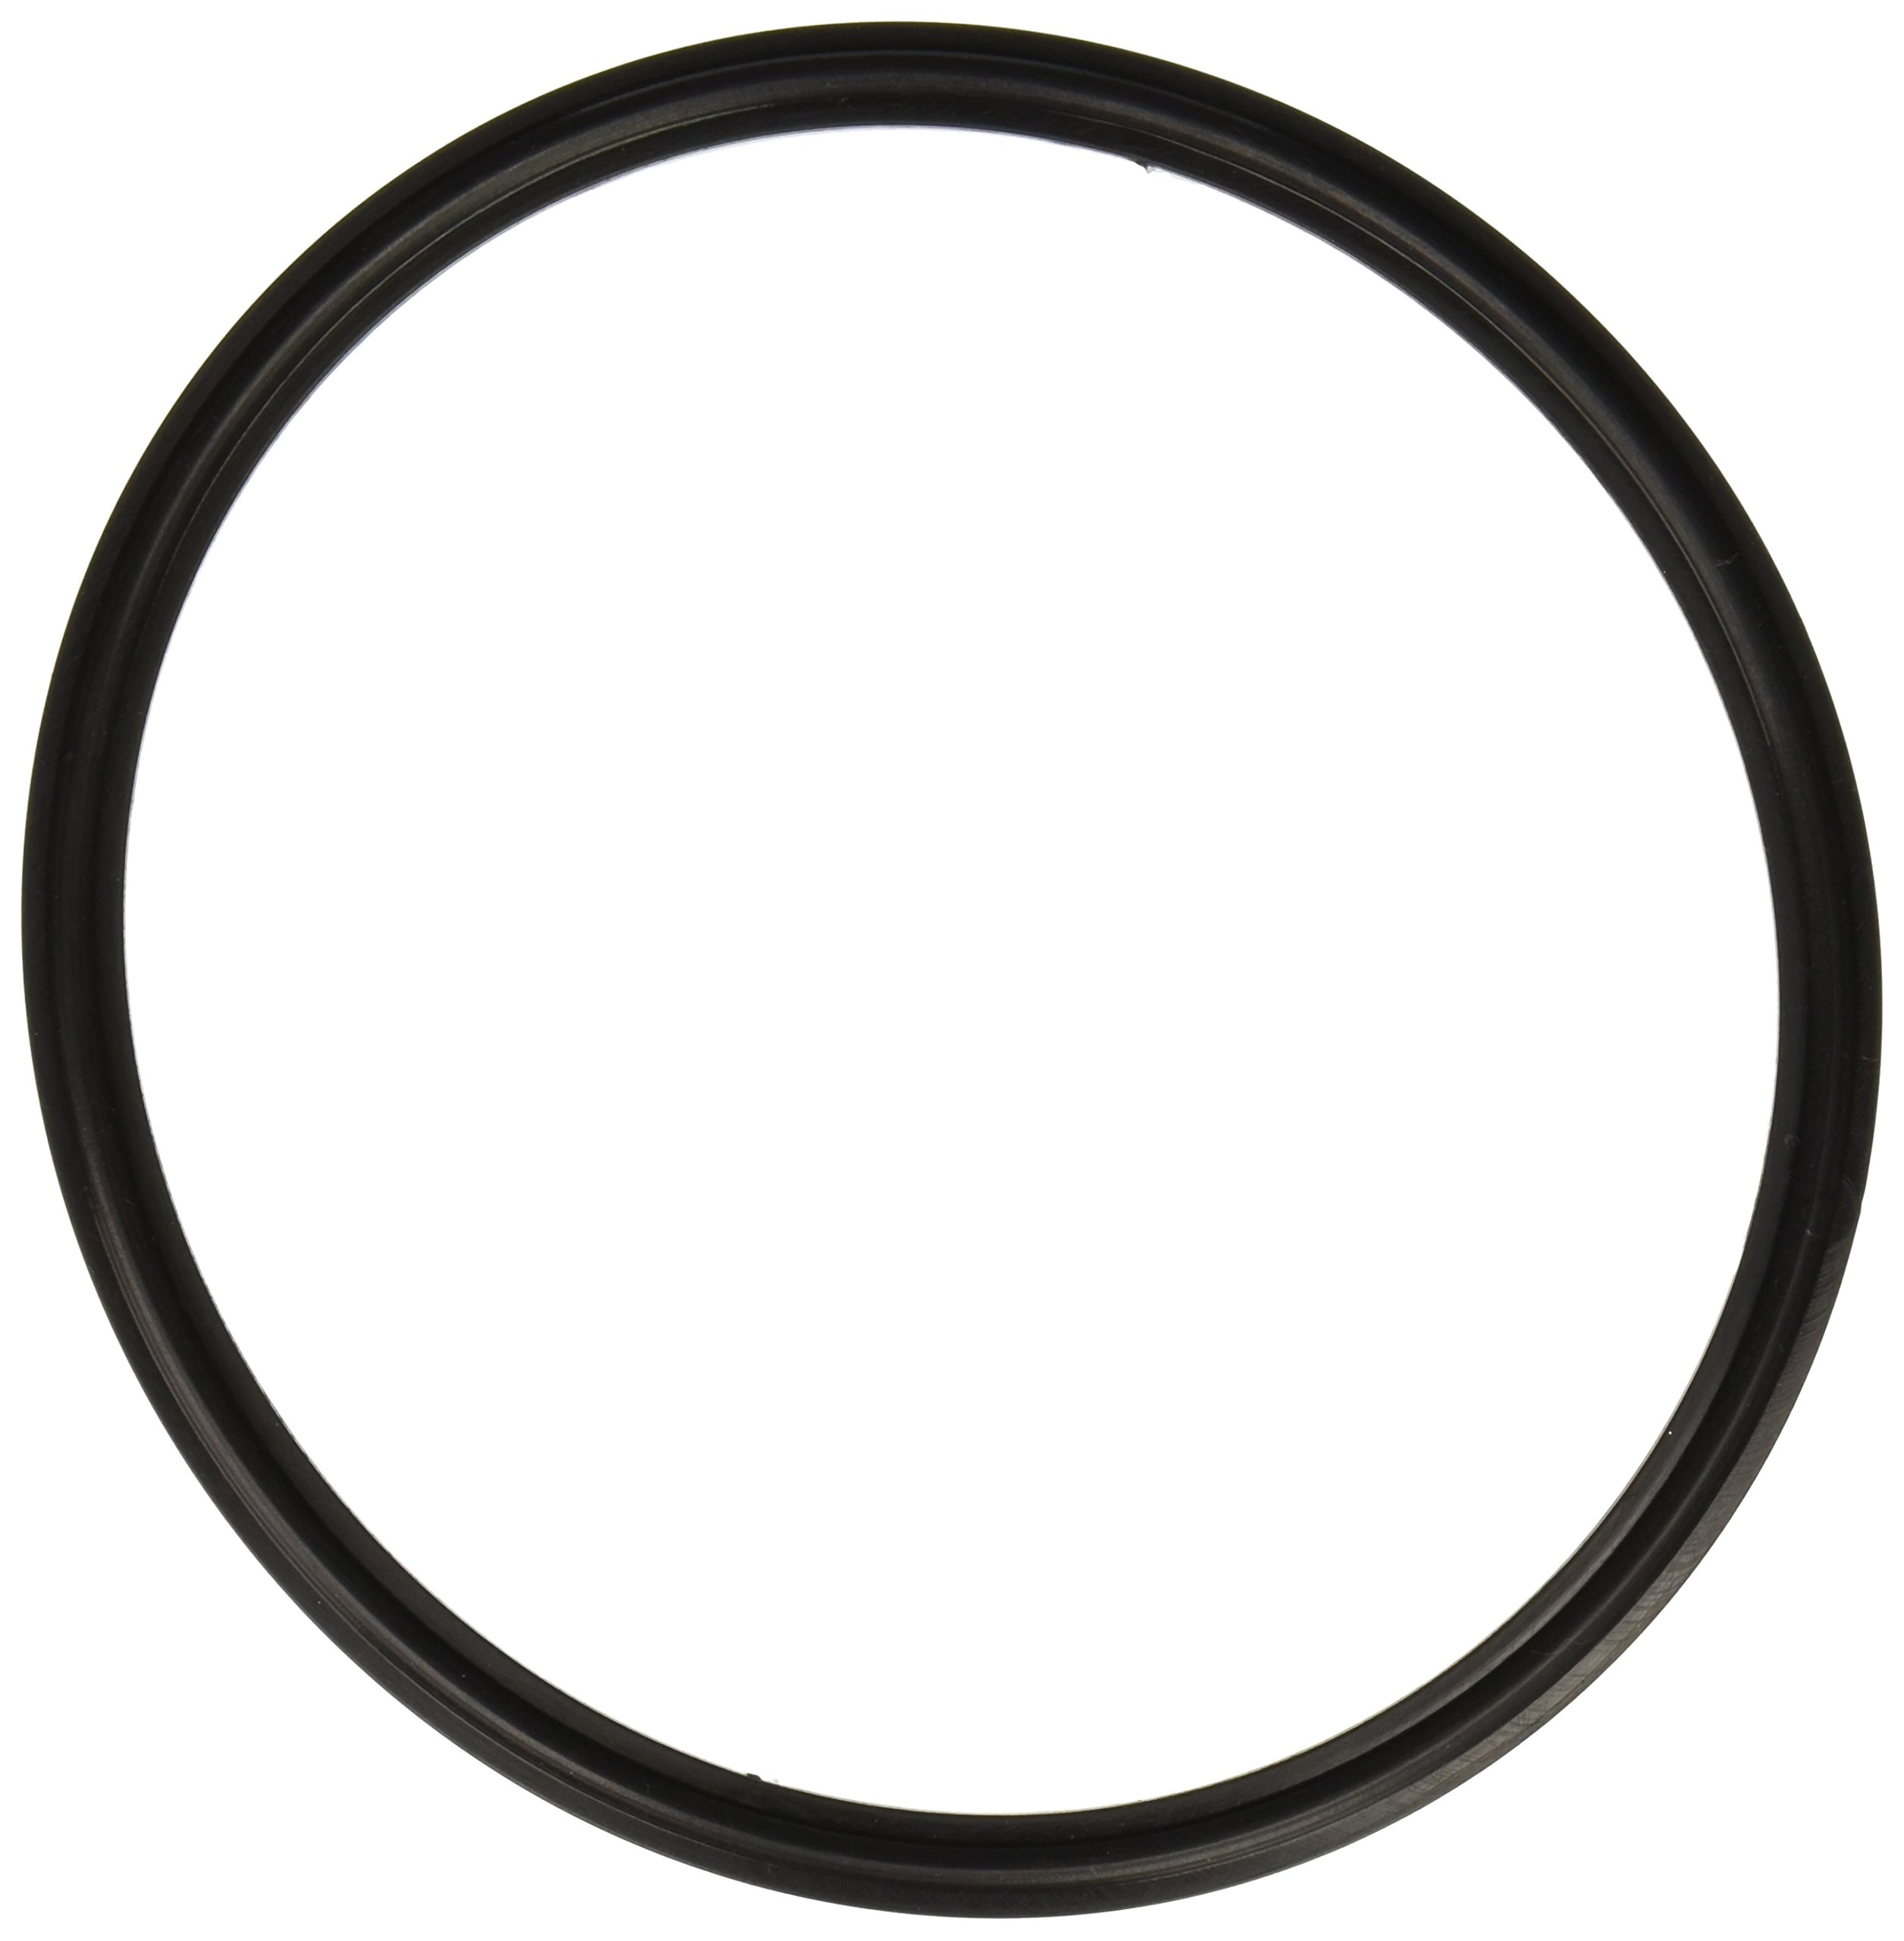 Hayward SPX0540Z2 Lens Gasket Replacement for Underwater Lights